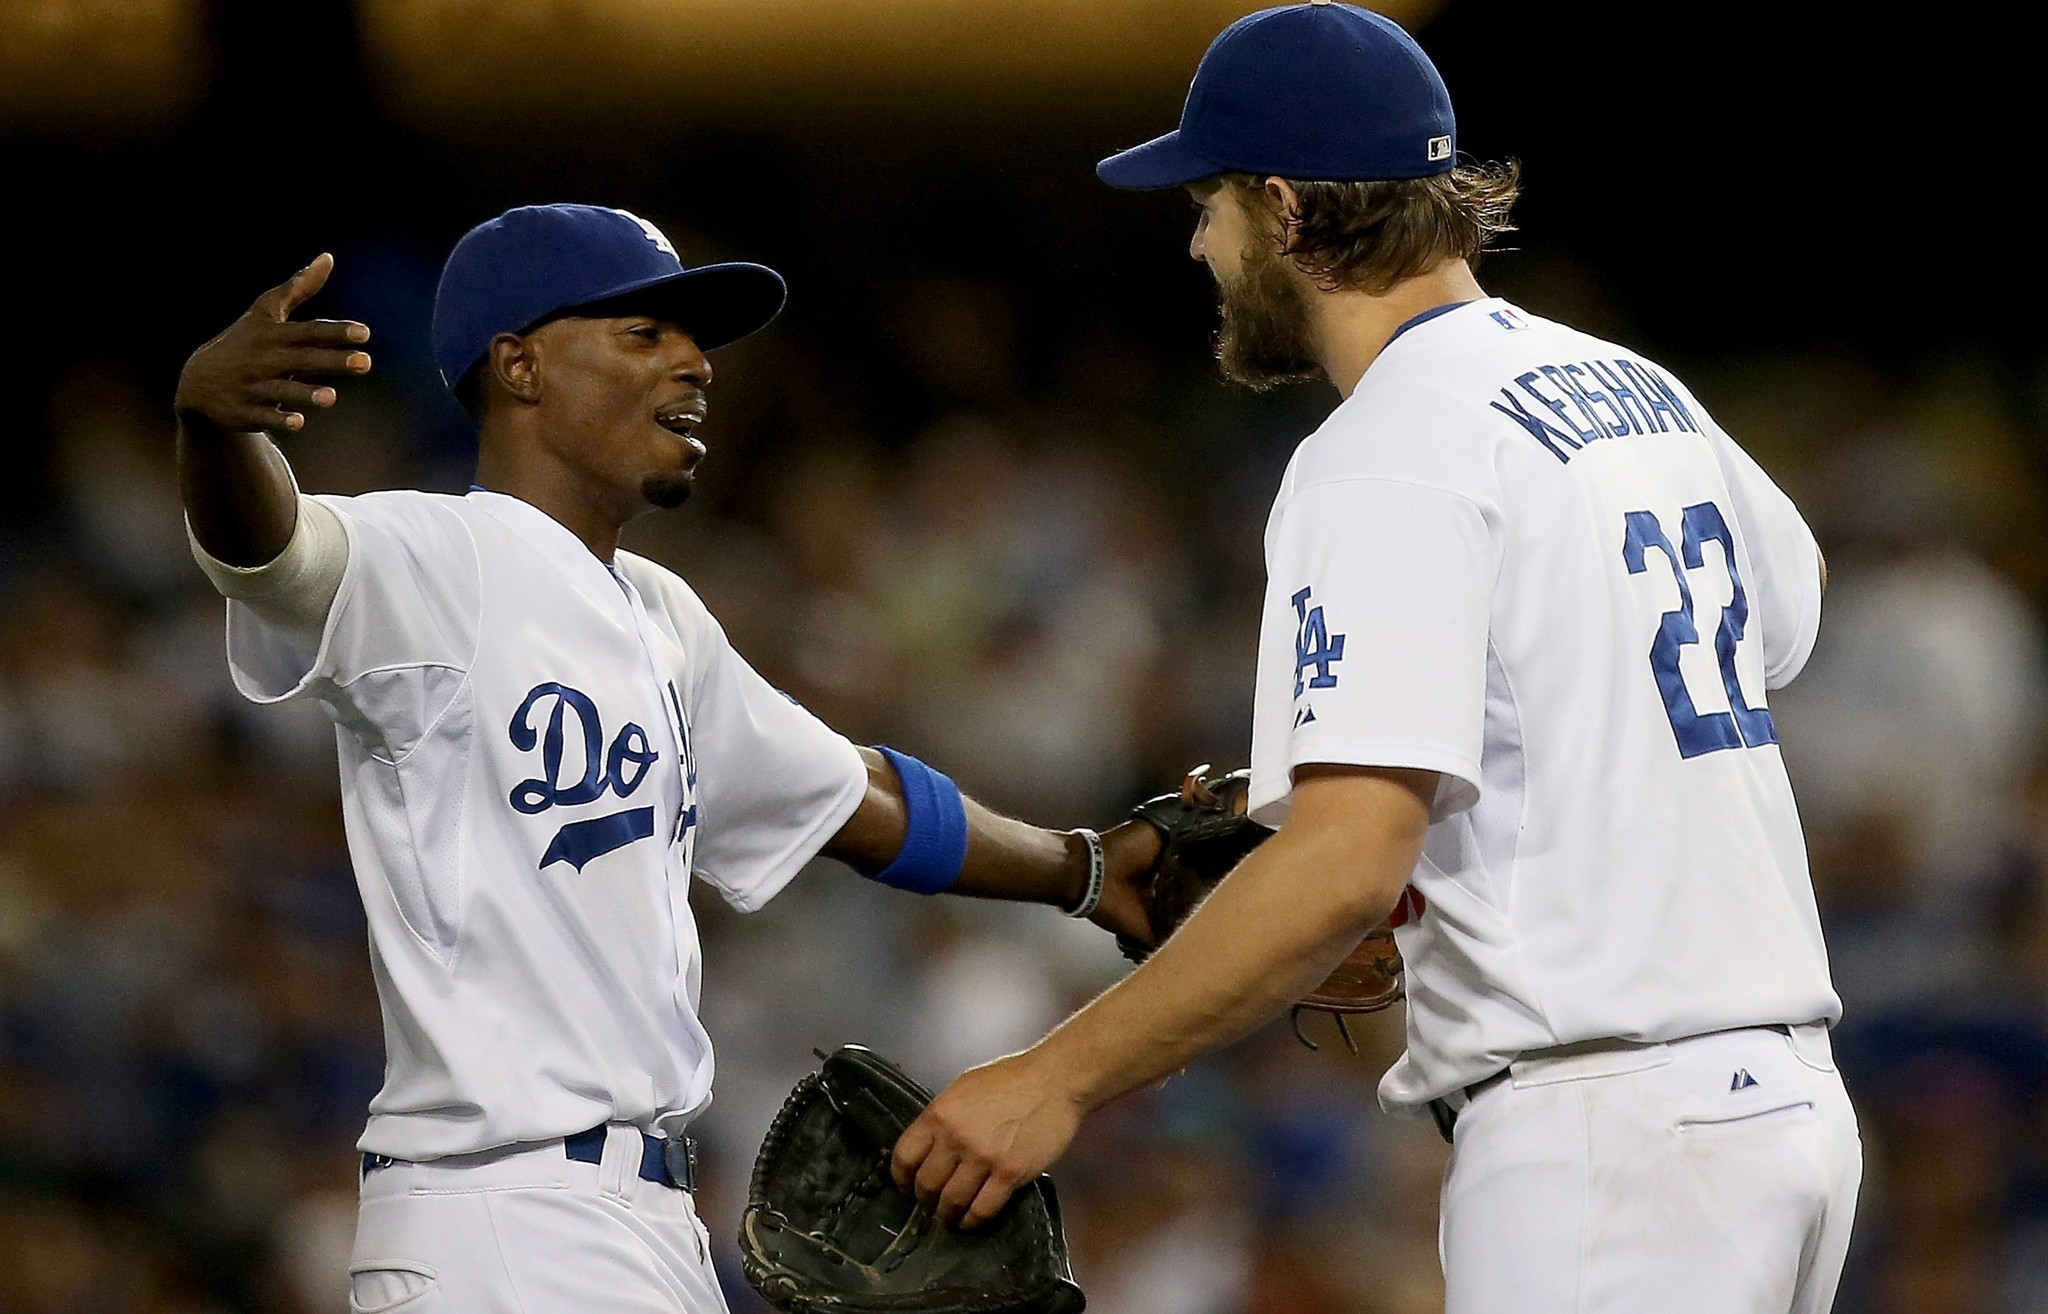 Clayton Kershaw's streak ends, but Dodgers top Padres, 2-1